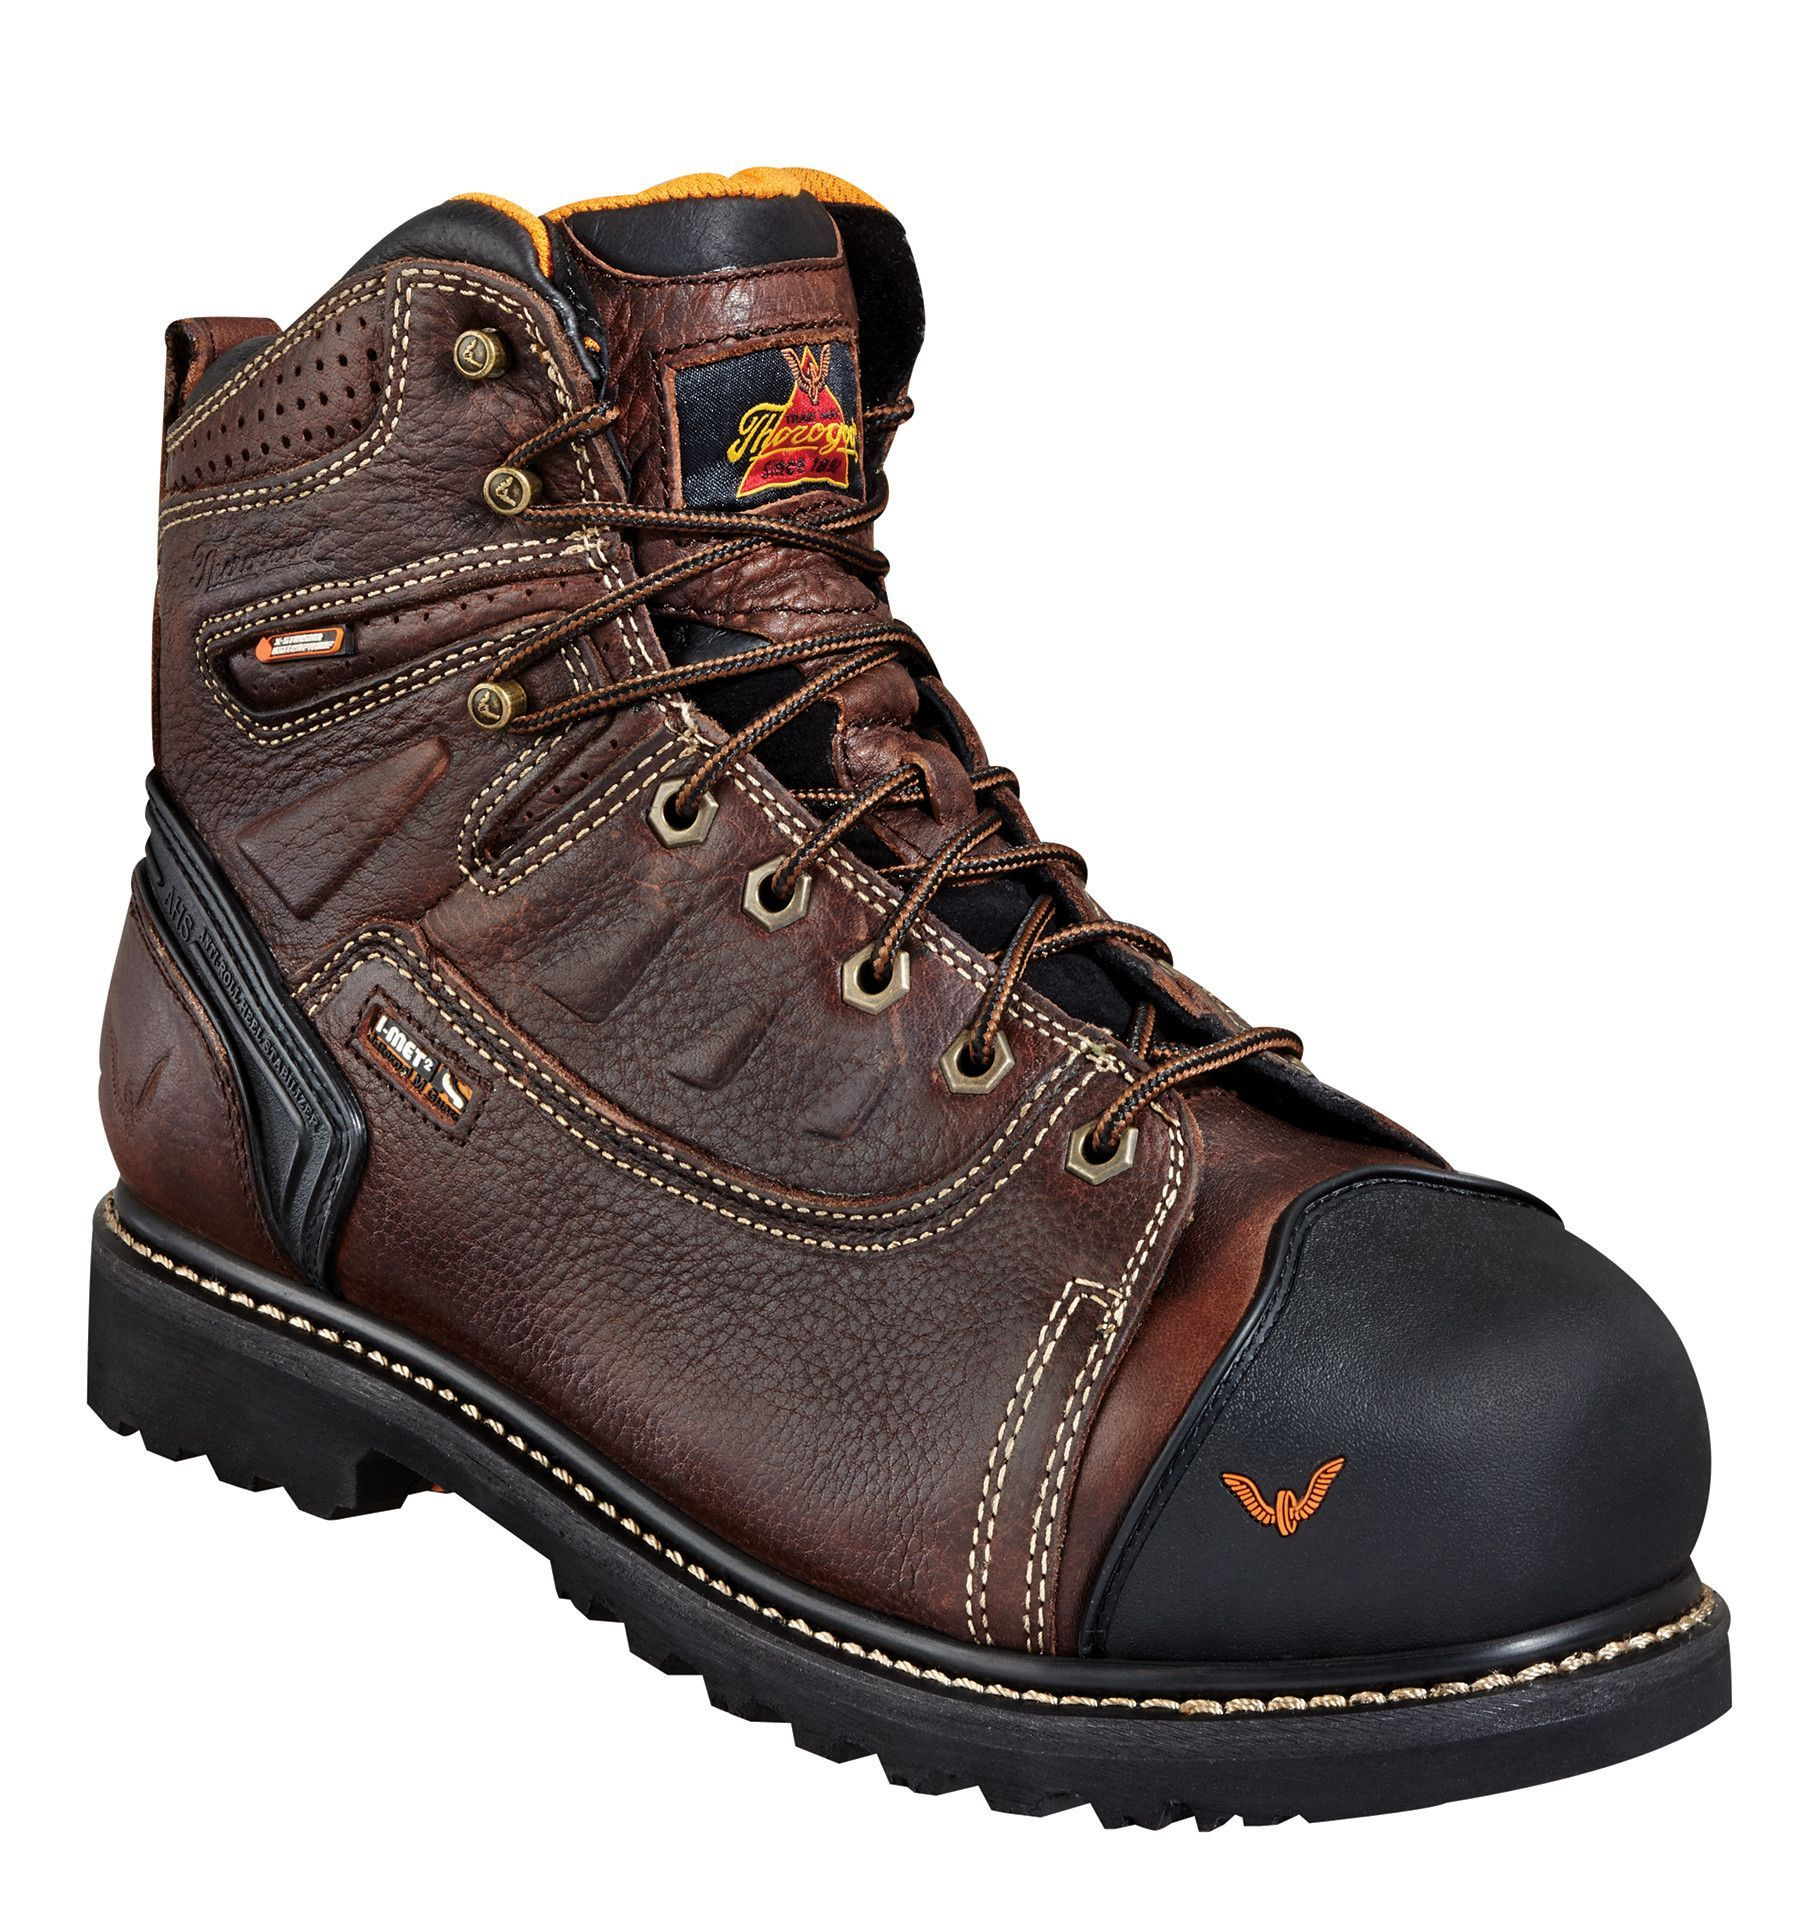 ba7d3fd8f63 Thorogood Mens Work Boots Brown Leather I-Met 6in WP Lace-to-Safety ...